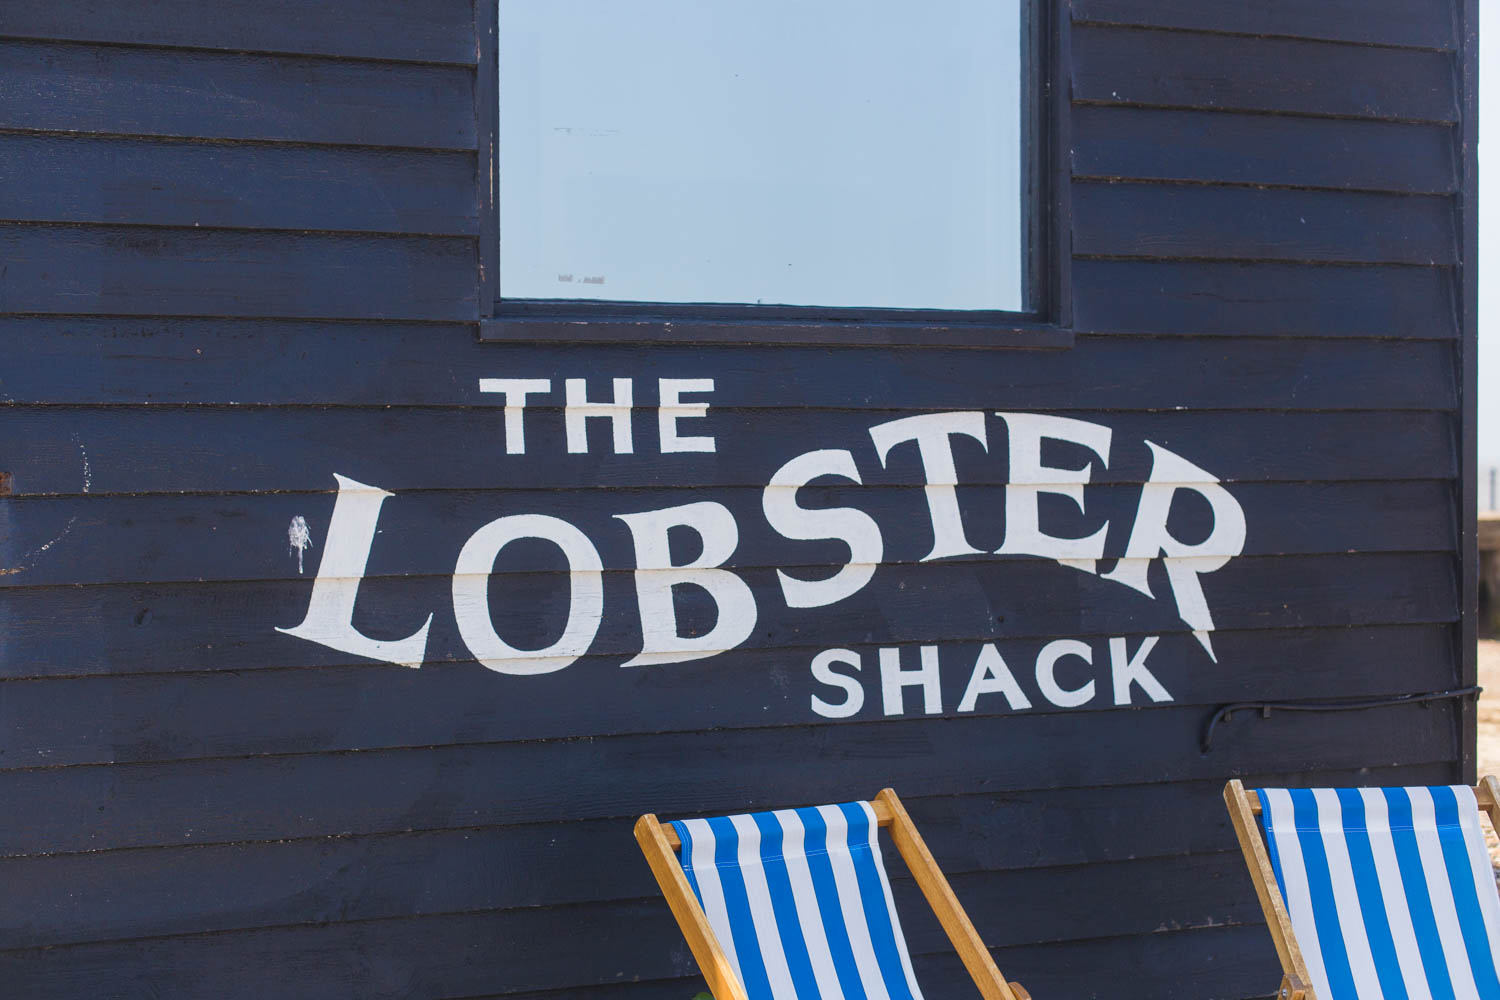 The Lobster Shack - Ever wondered where all the colourful houses are in Whitstable? I'm sharing a few pastel streets to discover in this harbour town in Kent plus the cafés and restaurants where you can edit your snaps.